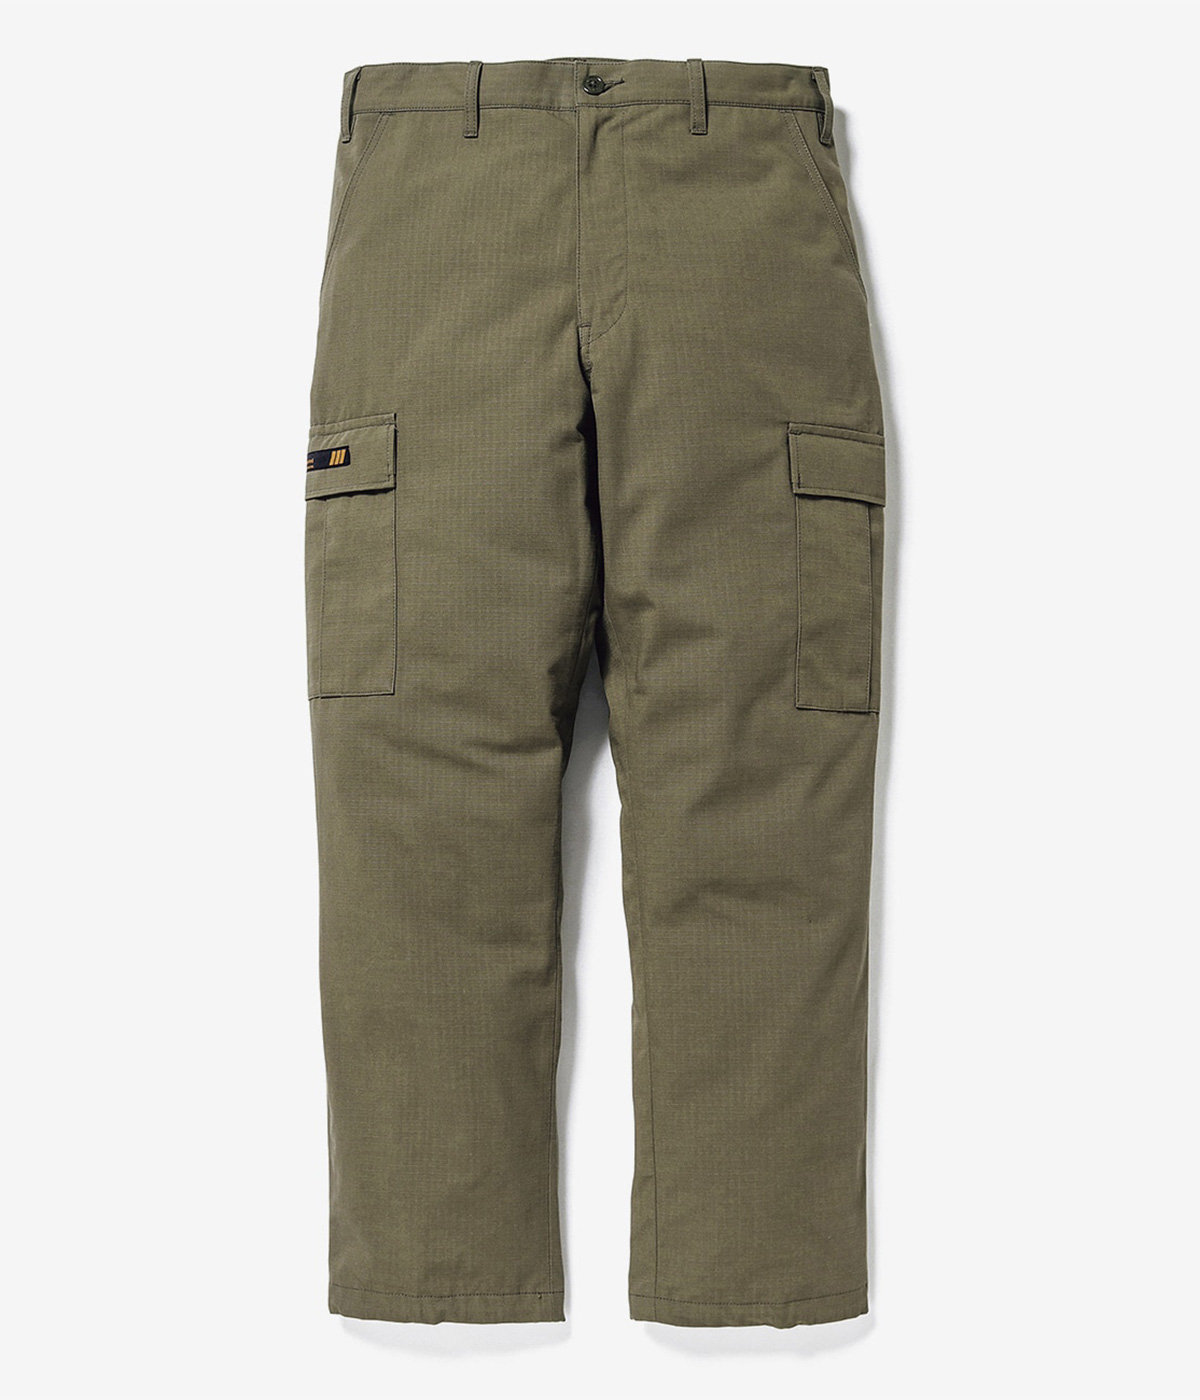 JUNGLE STOCK / TROUSERS. NYCO. RIPSTOP. CORDURA